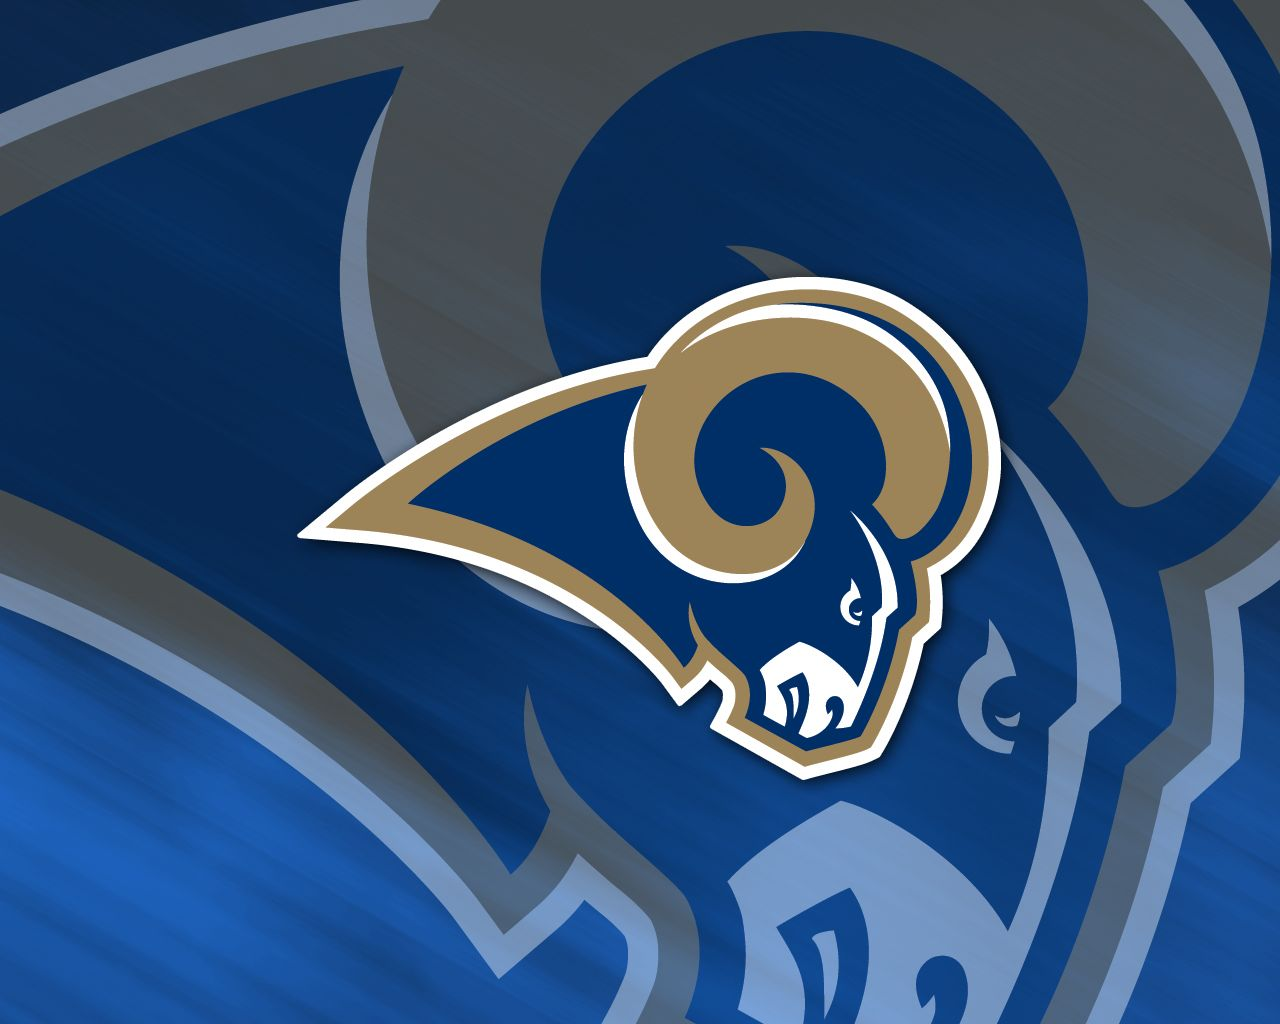 Los Angeles Rams Wallpaper 14656 1280x1024 px ~ HDWallSource.com